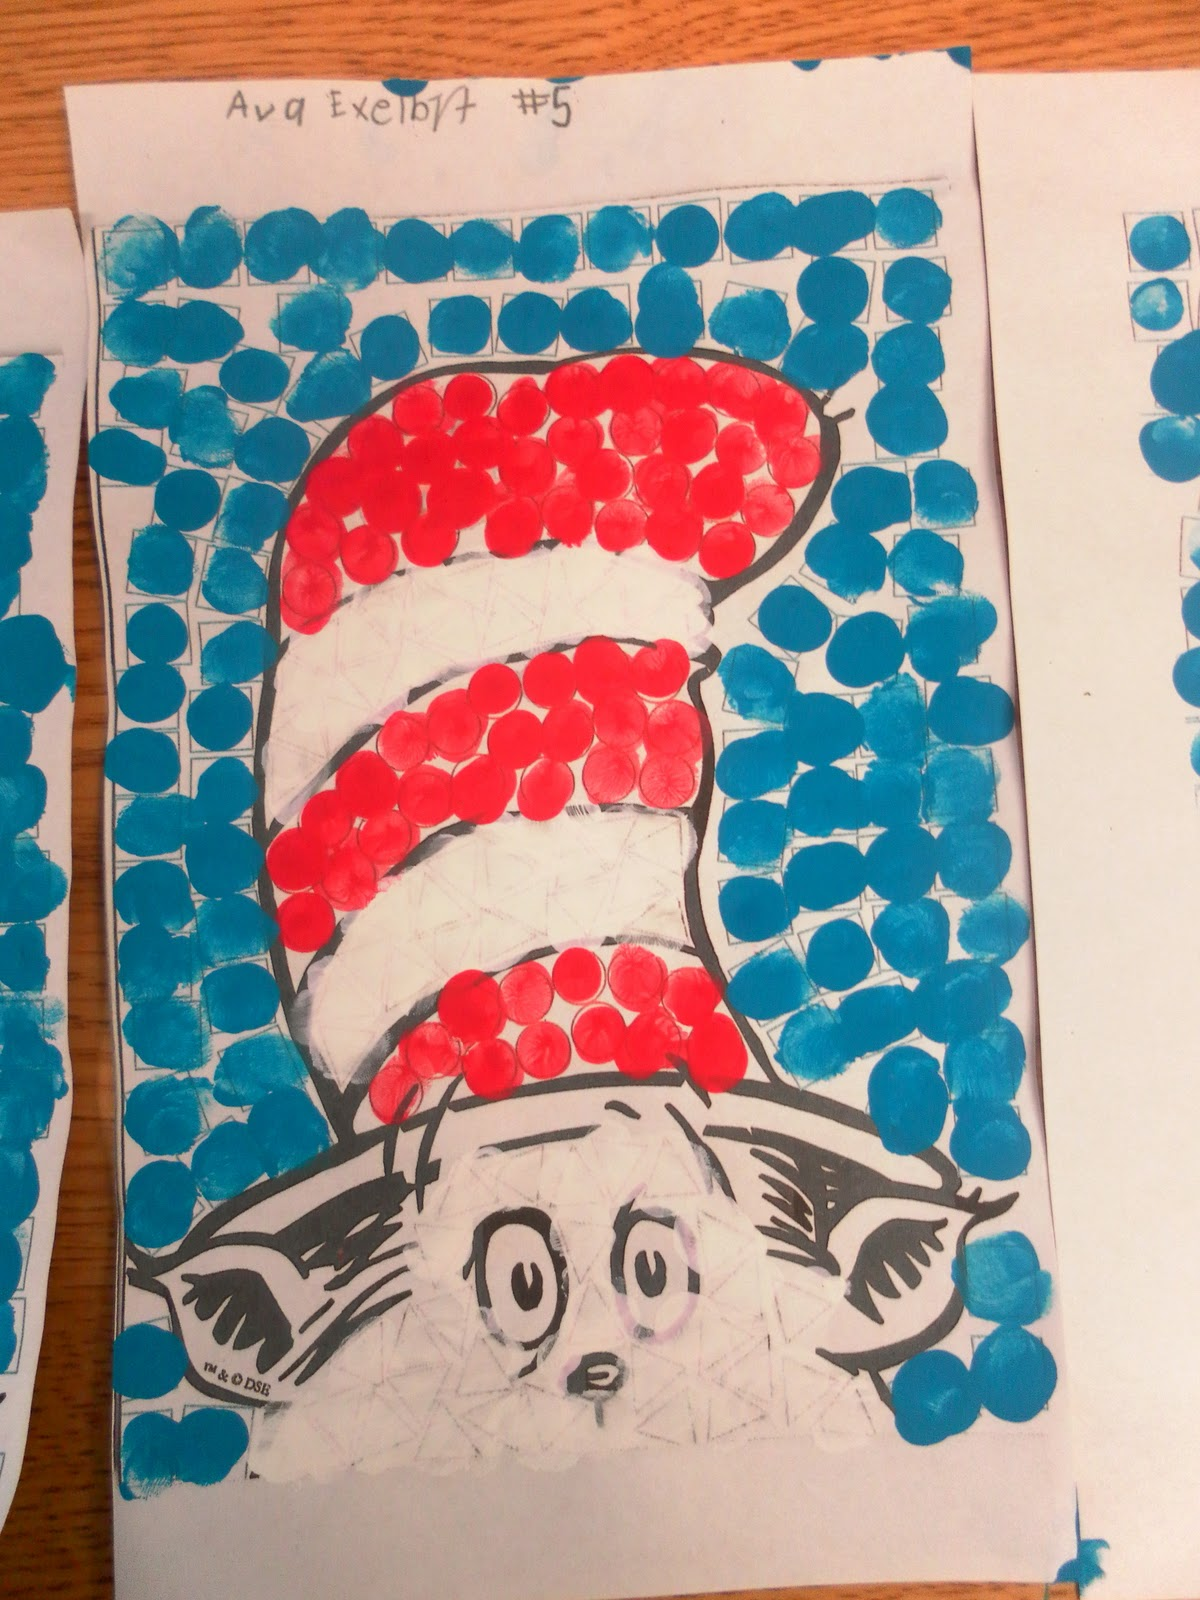 dr seuss projects Sensory activities for kids based on classic dr seuss books  this 10 apples up  top counting activity from sugar aunts might seem all sweetness and light.